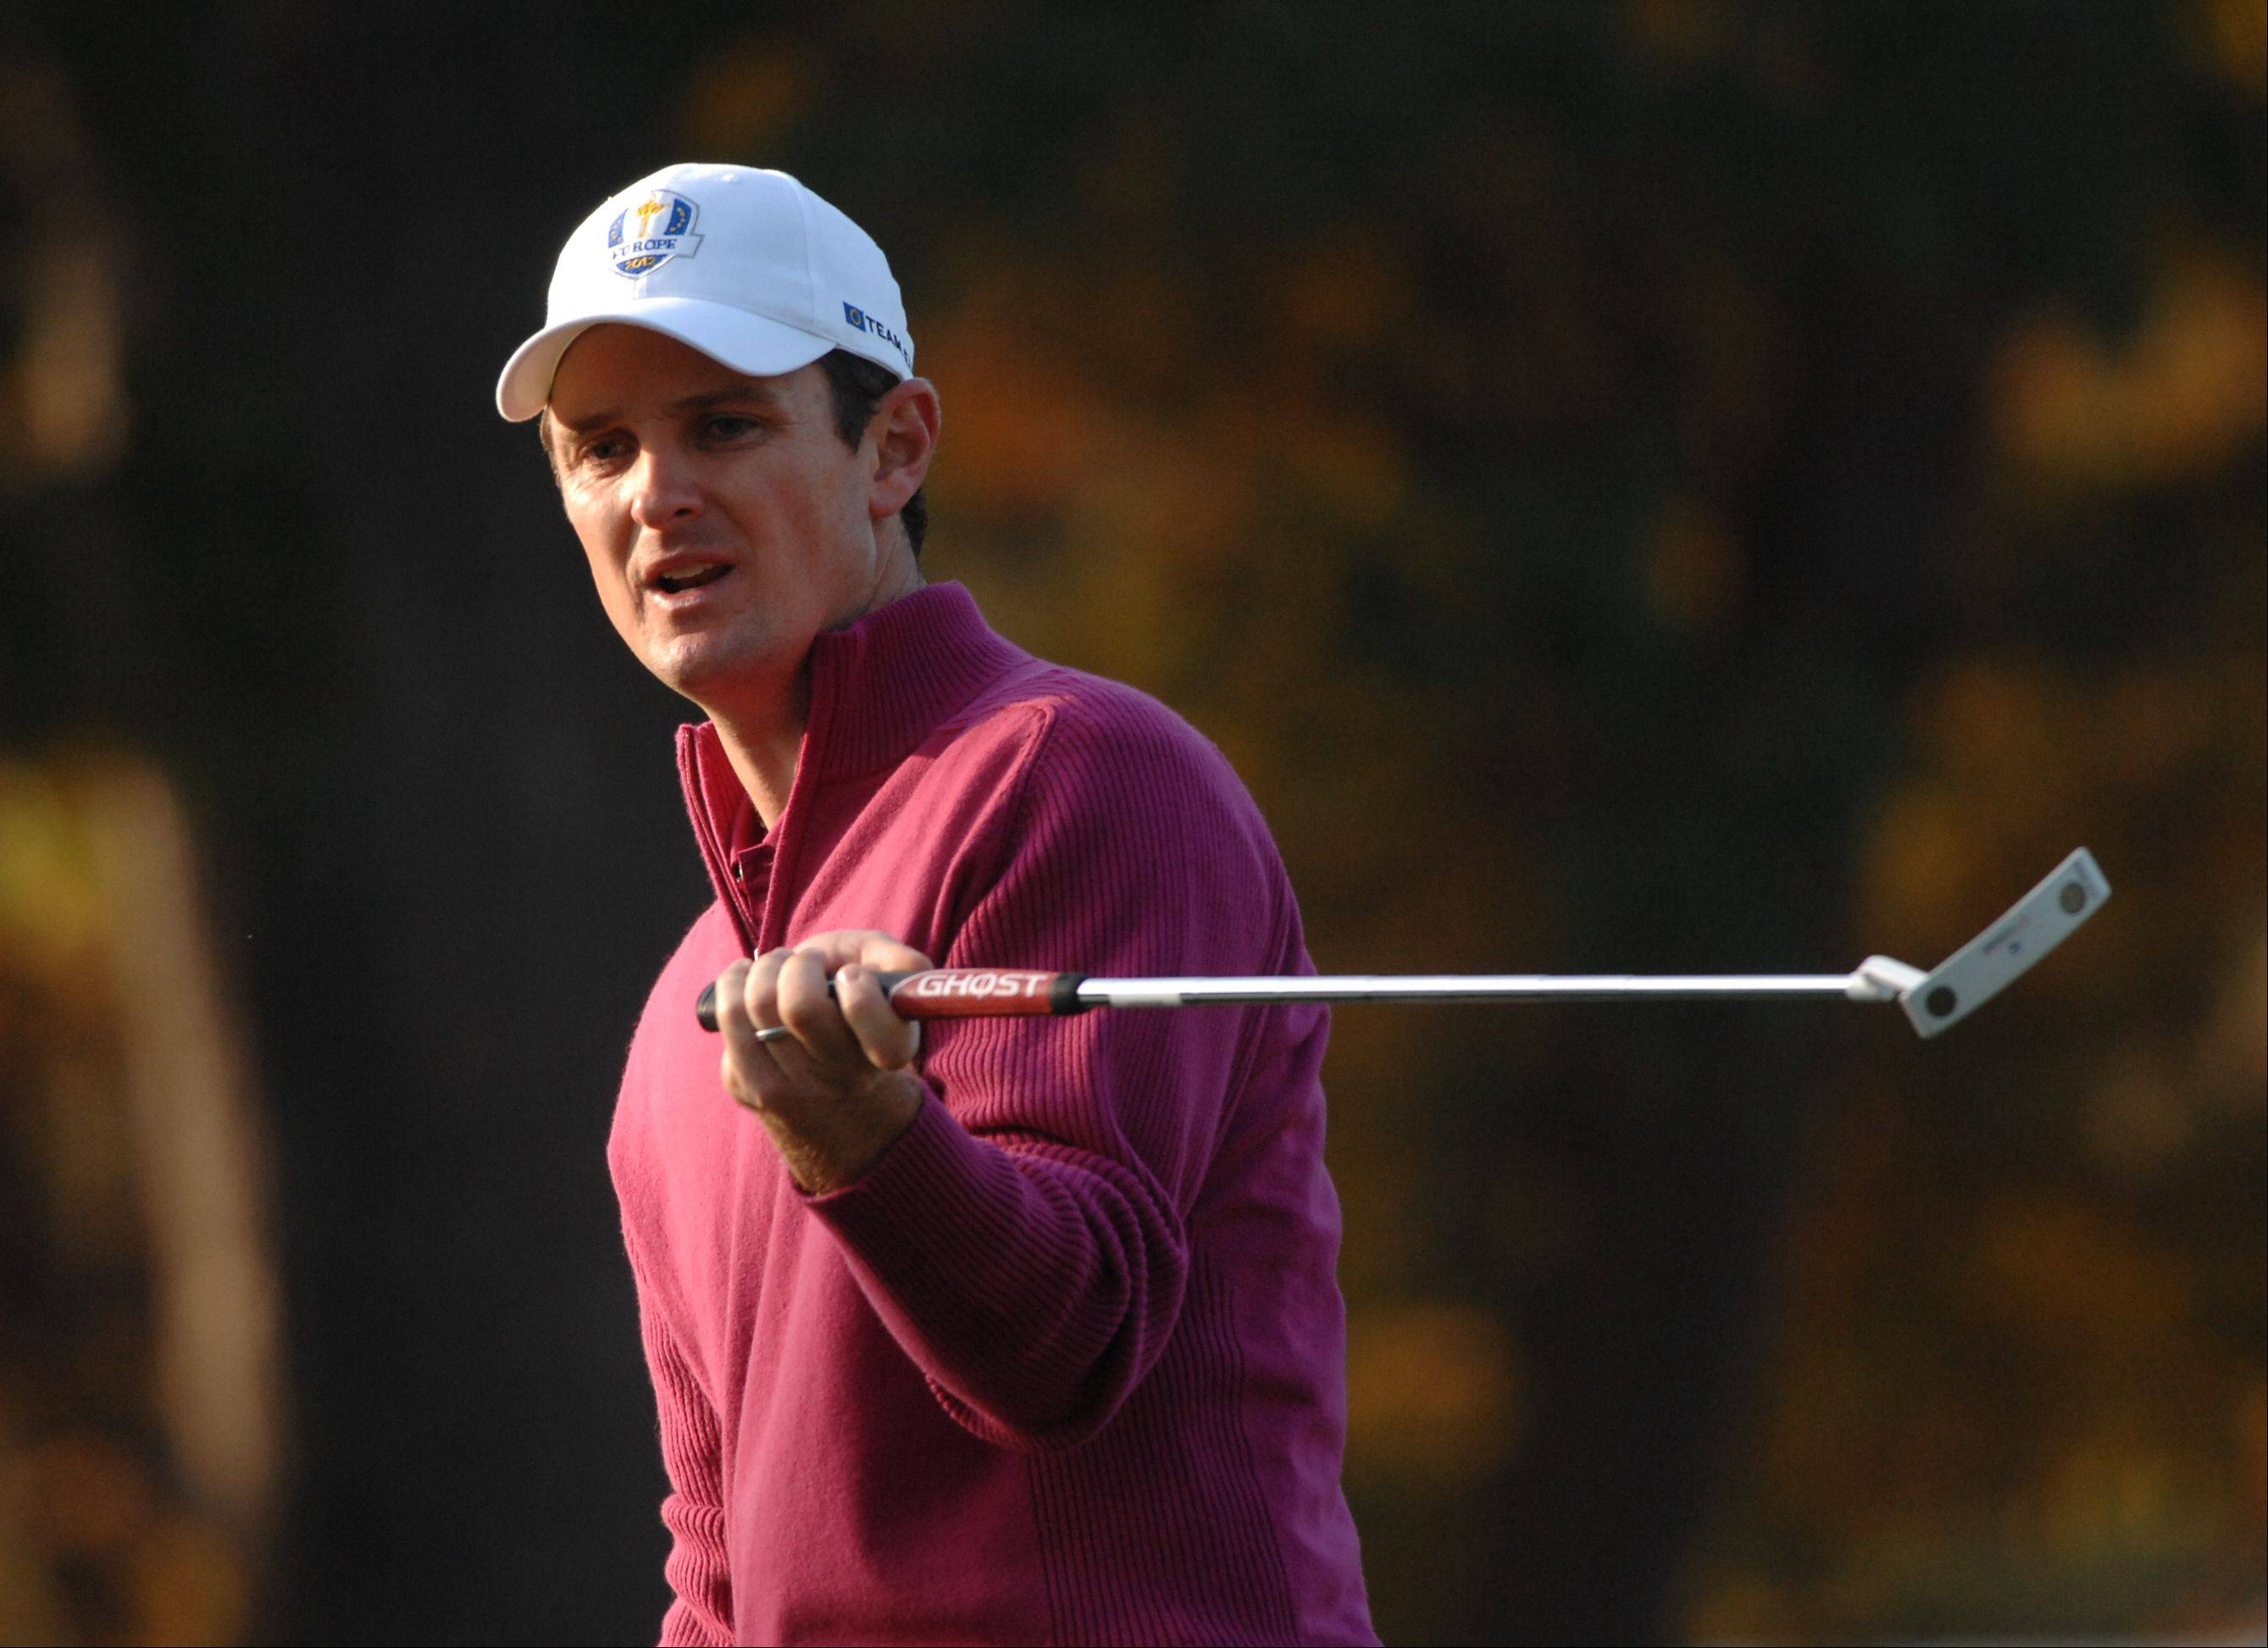 Justin Rose reacts to missing a putt on the ### hole Saturday morning during day 2 of the 2012 Ryder Cup at Medinah Country Club.